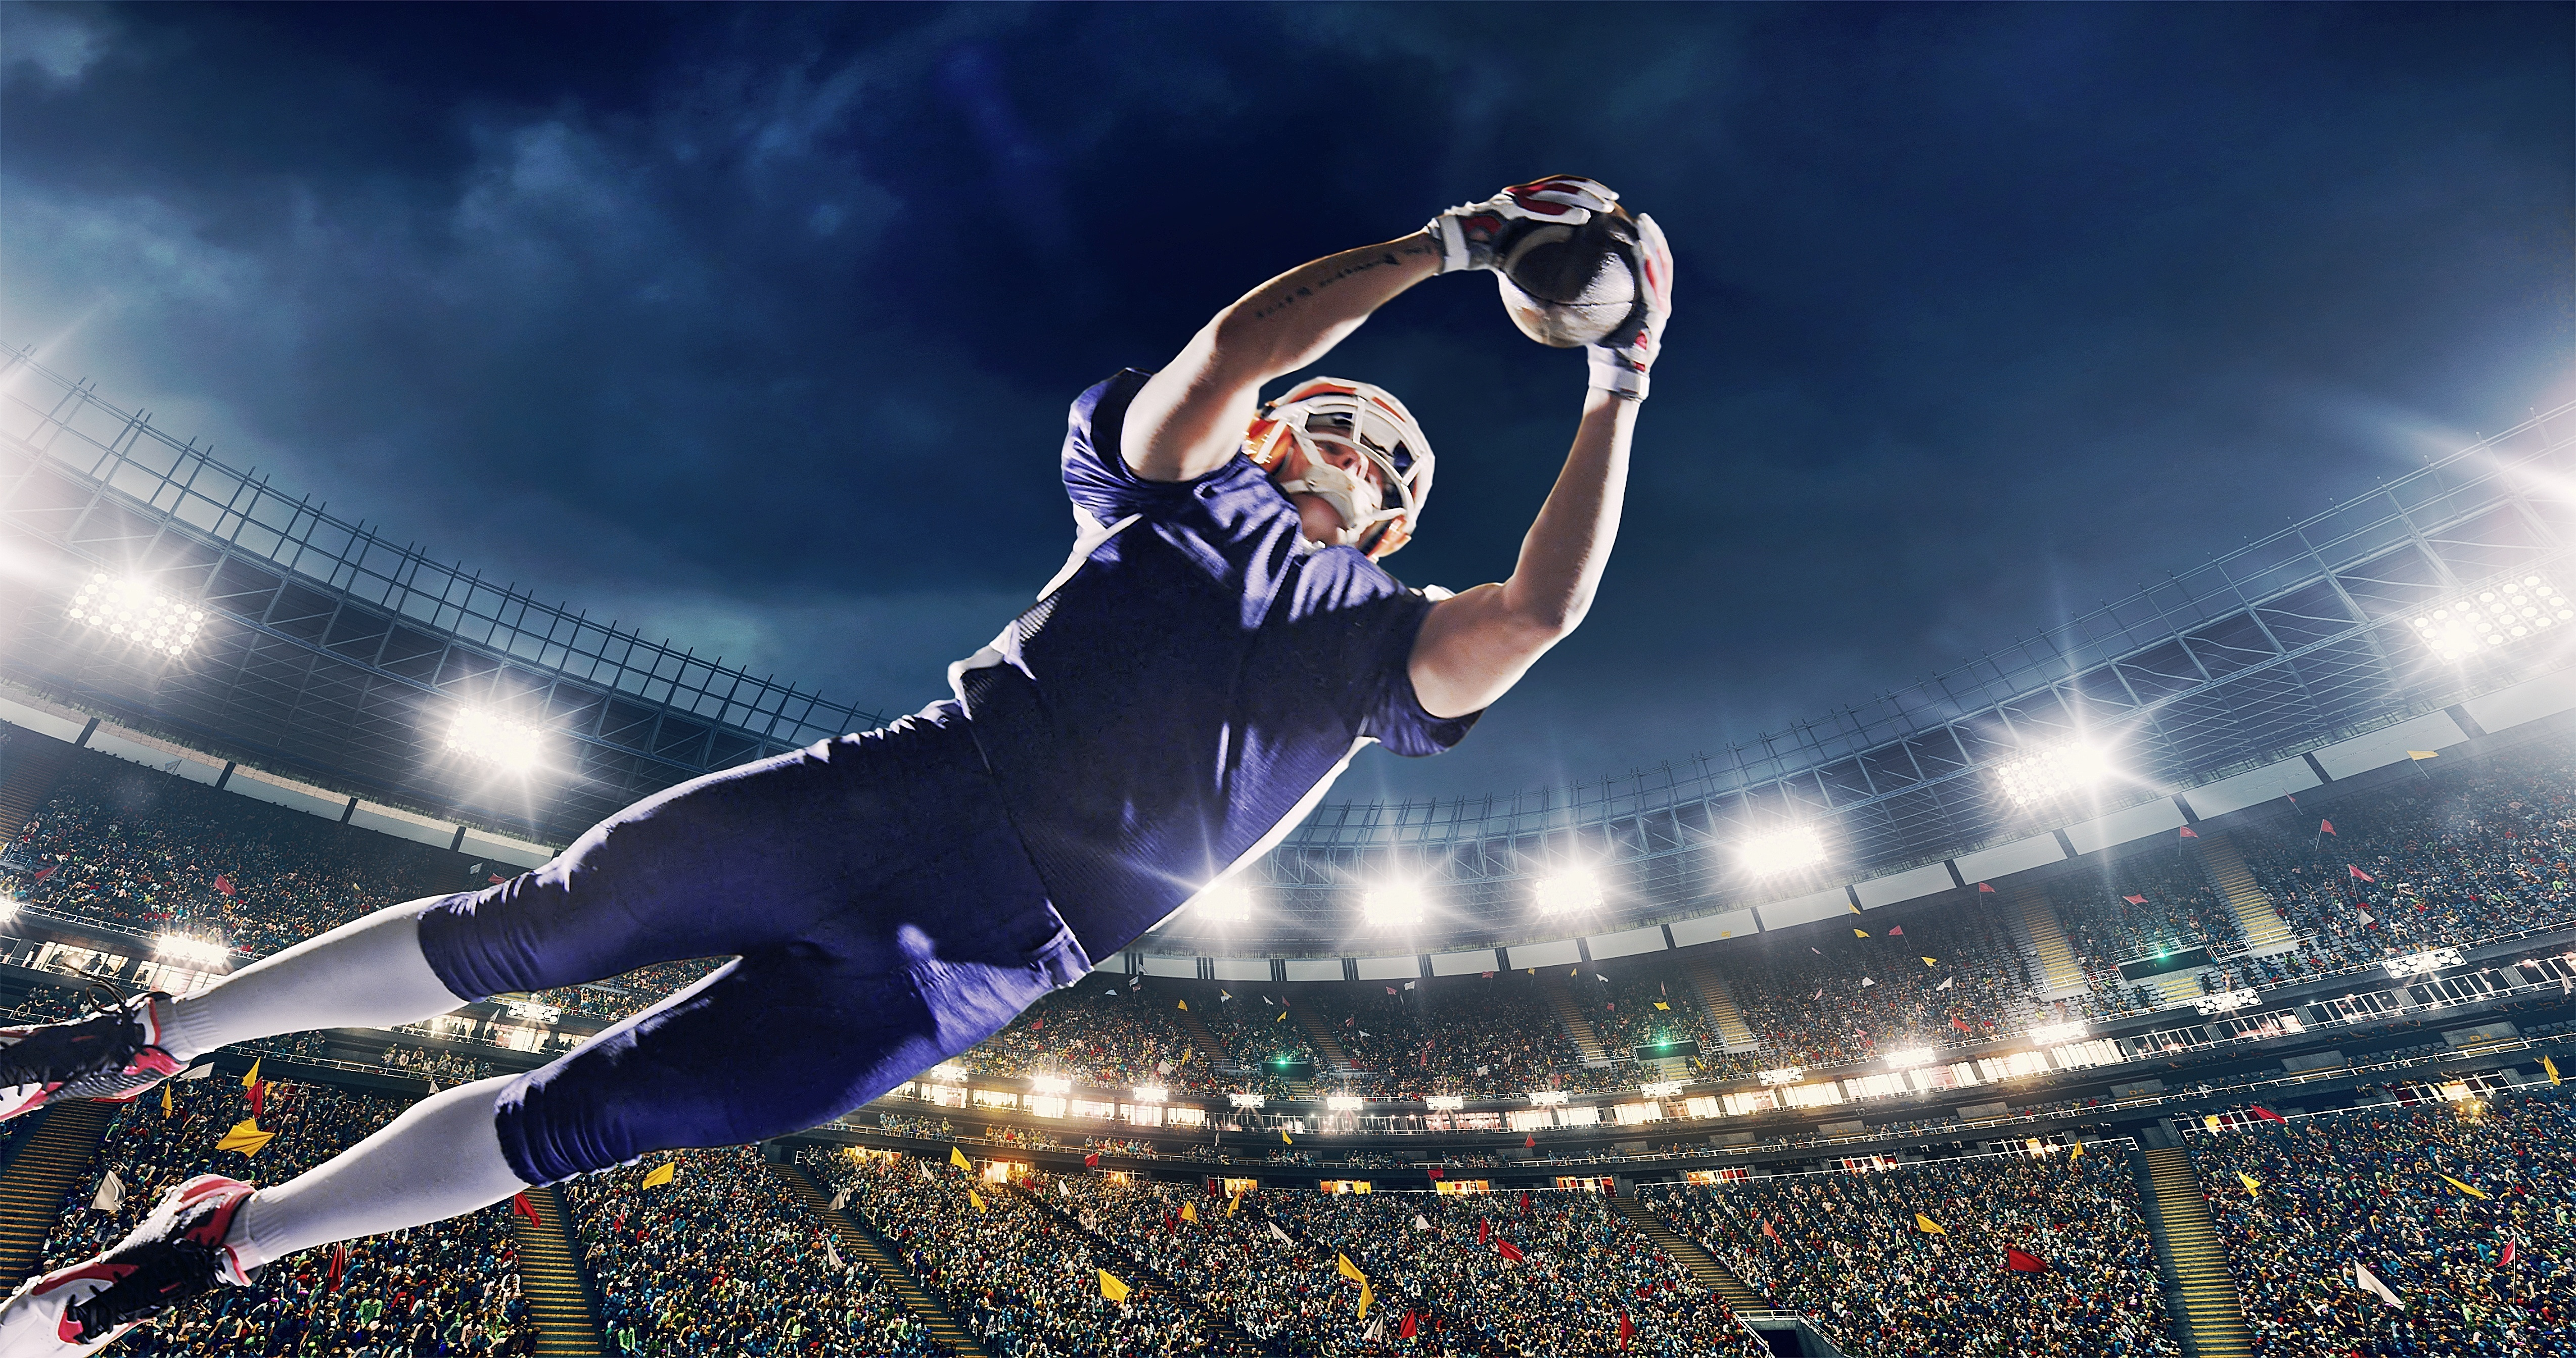 Player catching football in air